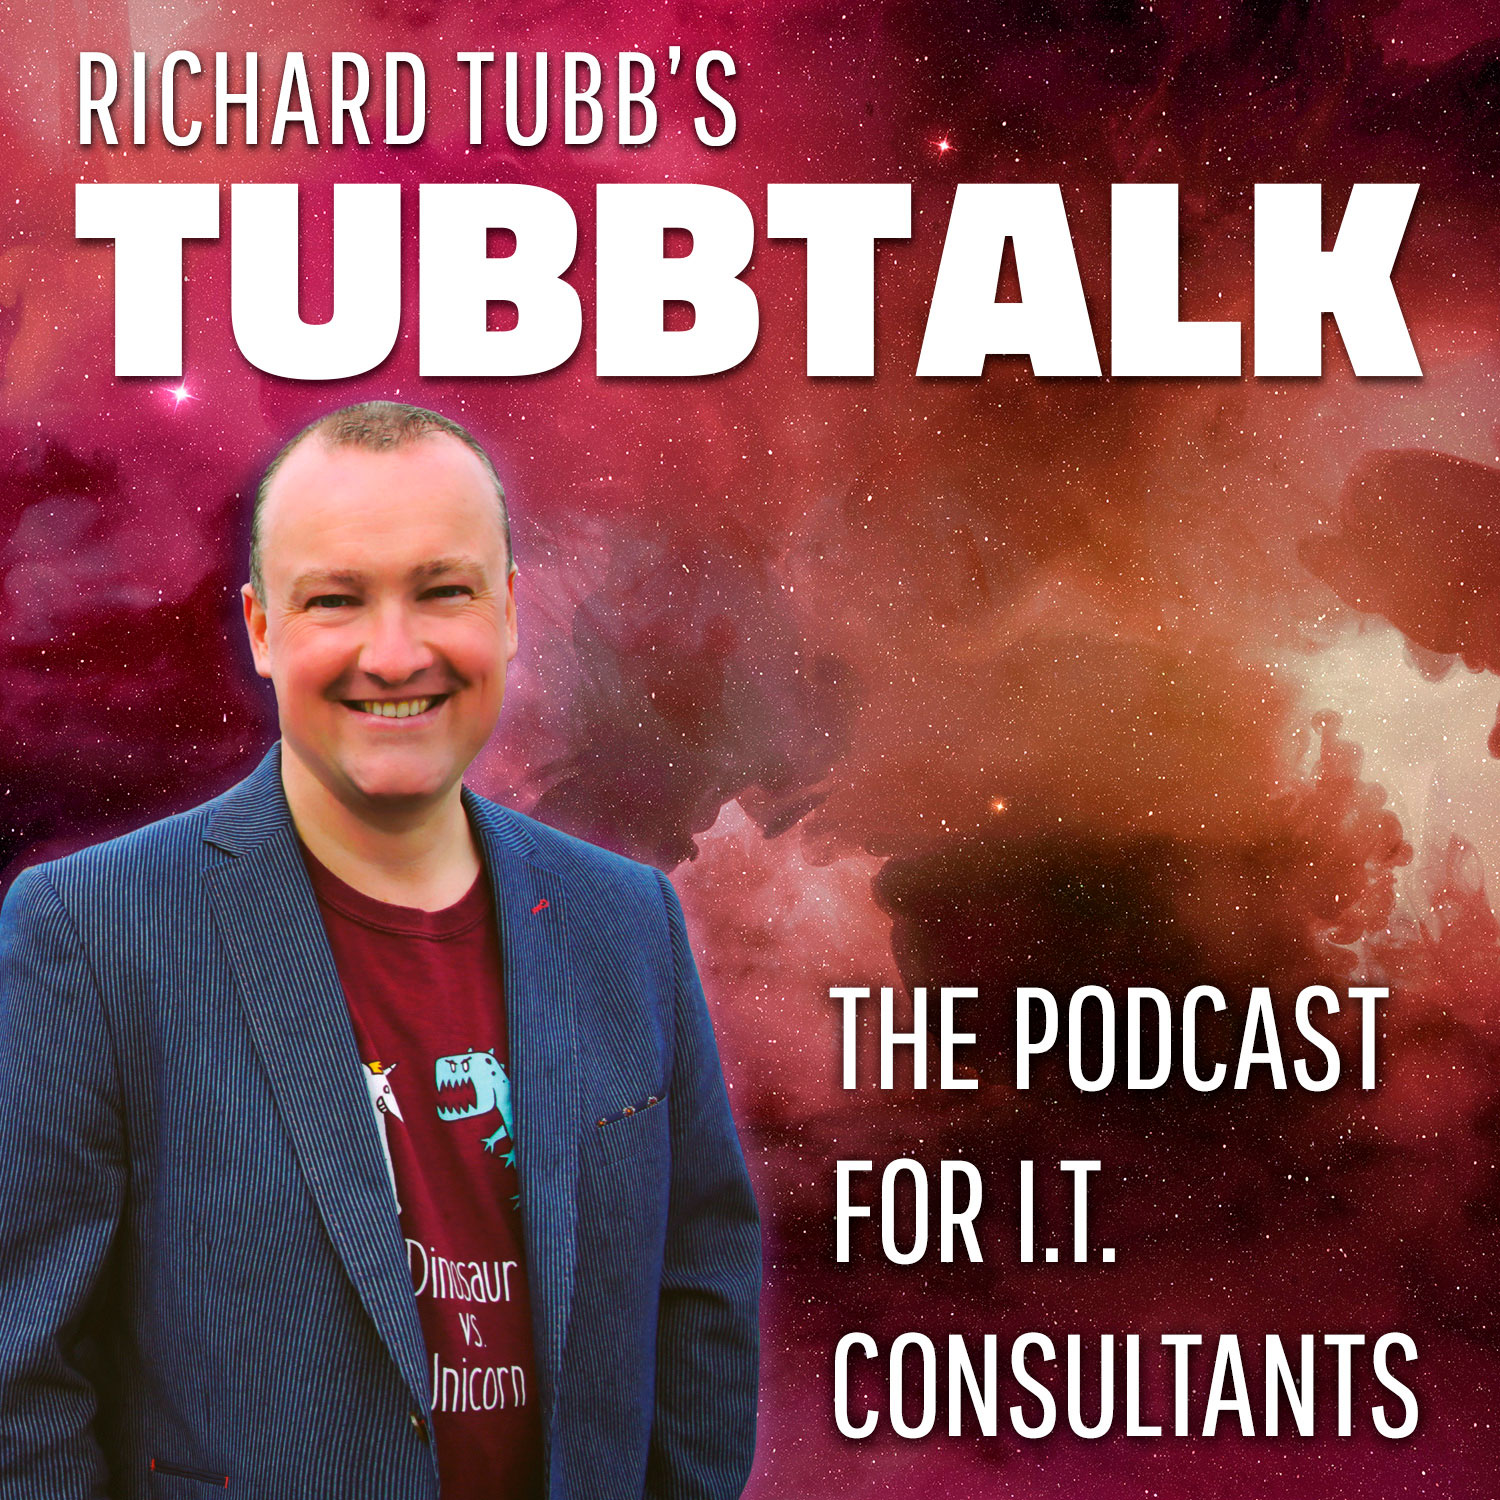 TubbTalk - The Podcast for IT Consultants show art